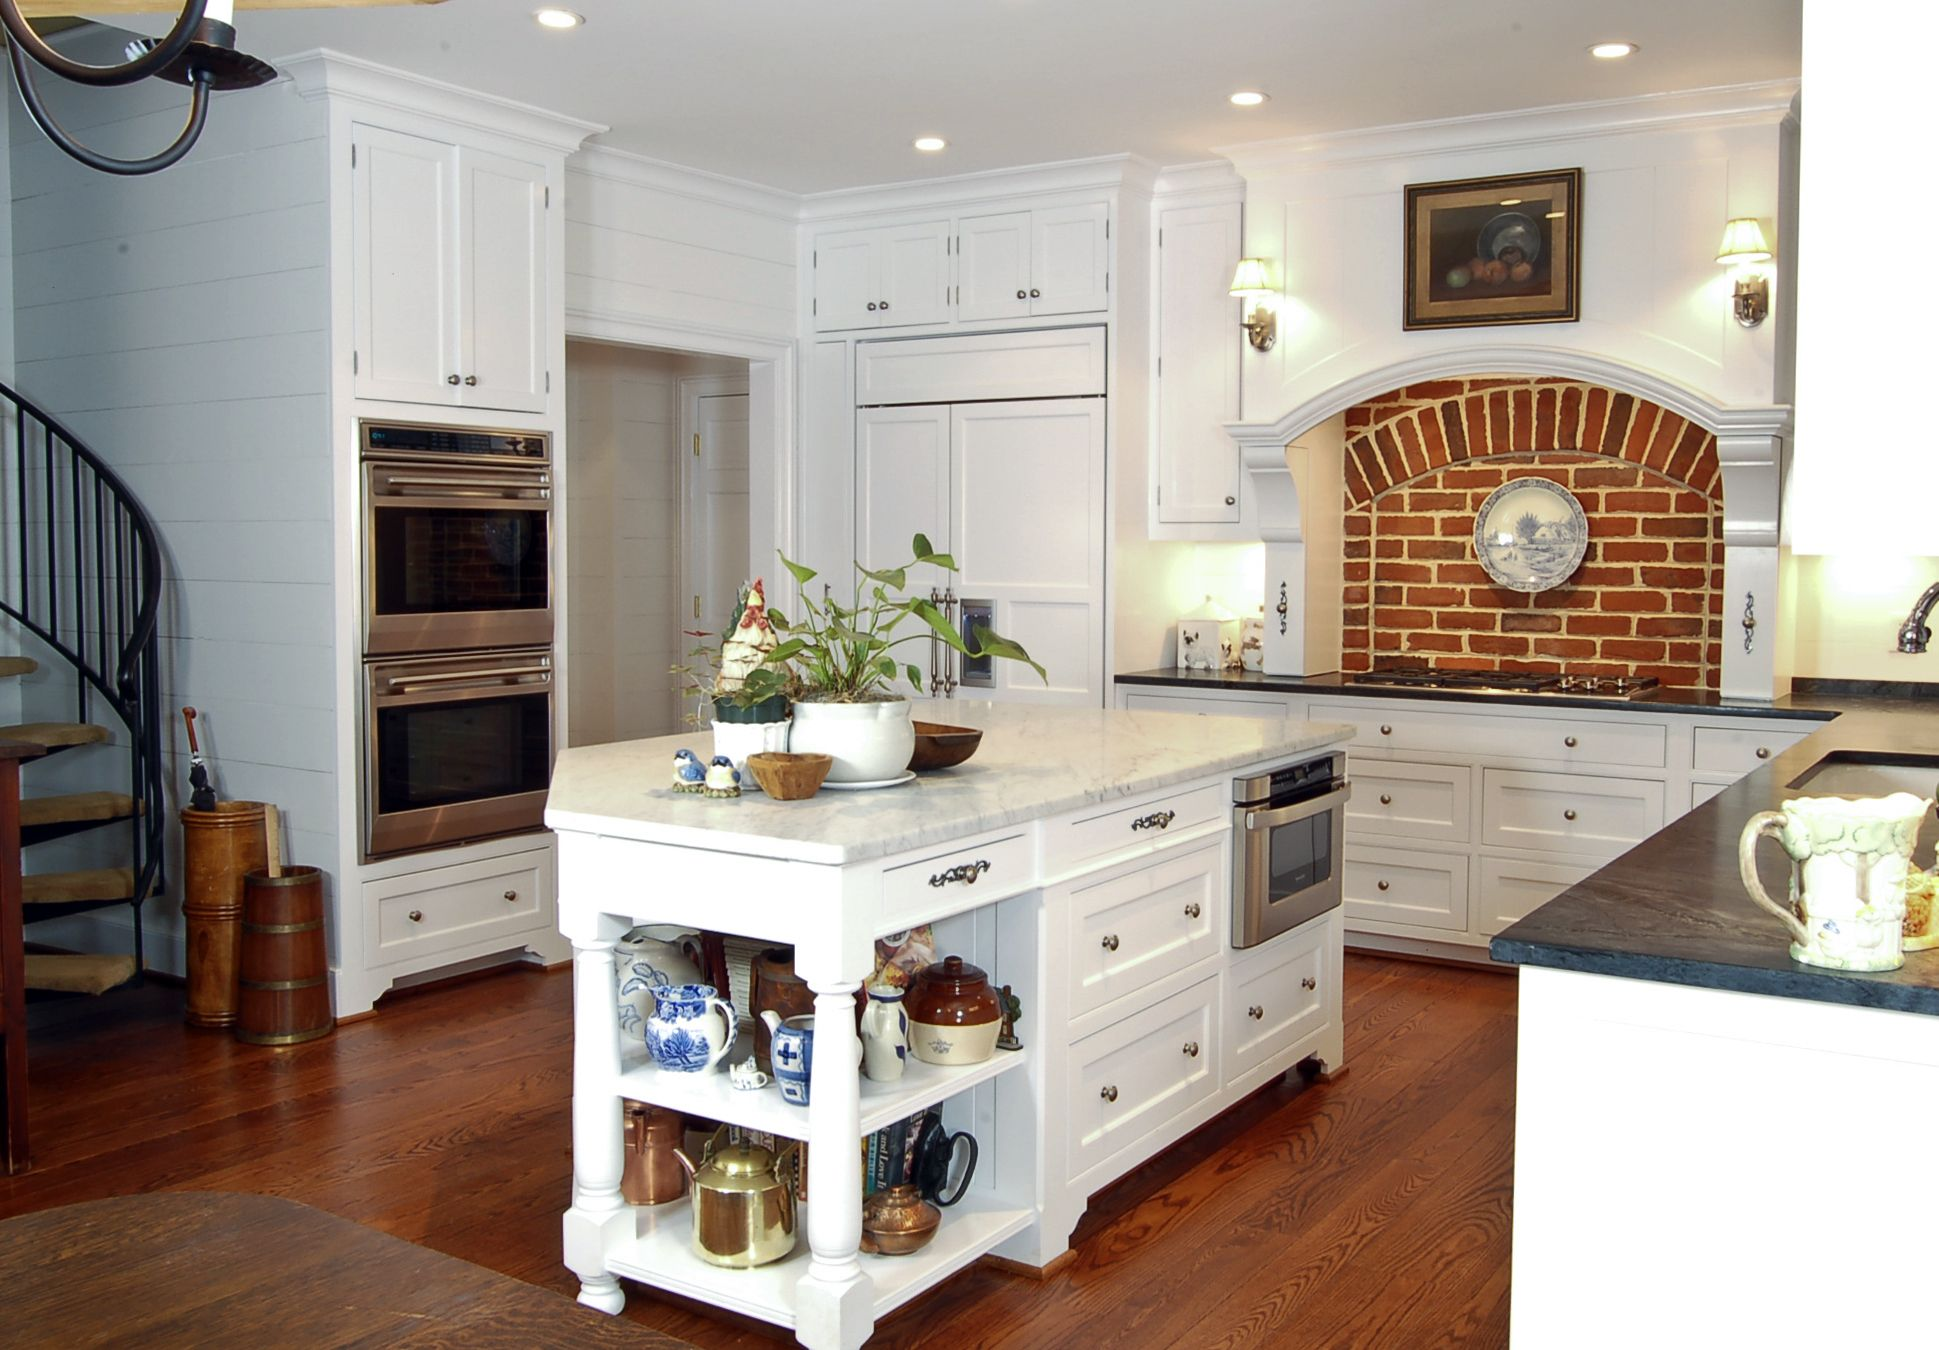 An American Classic Painted White Kitchen Architect Brad Heppner White Kitchen Cabinet Companies Kitchen